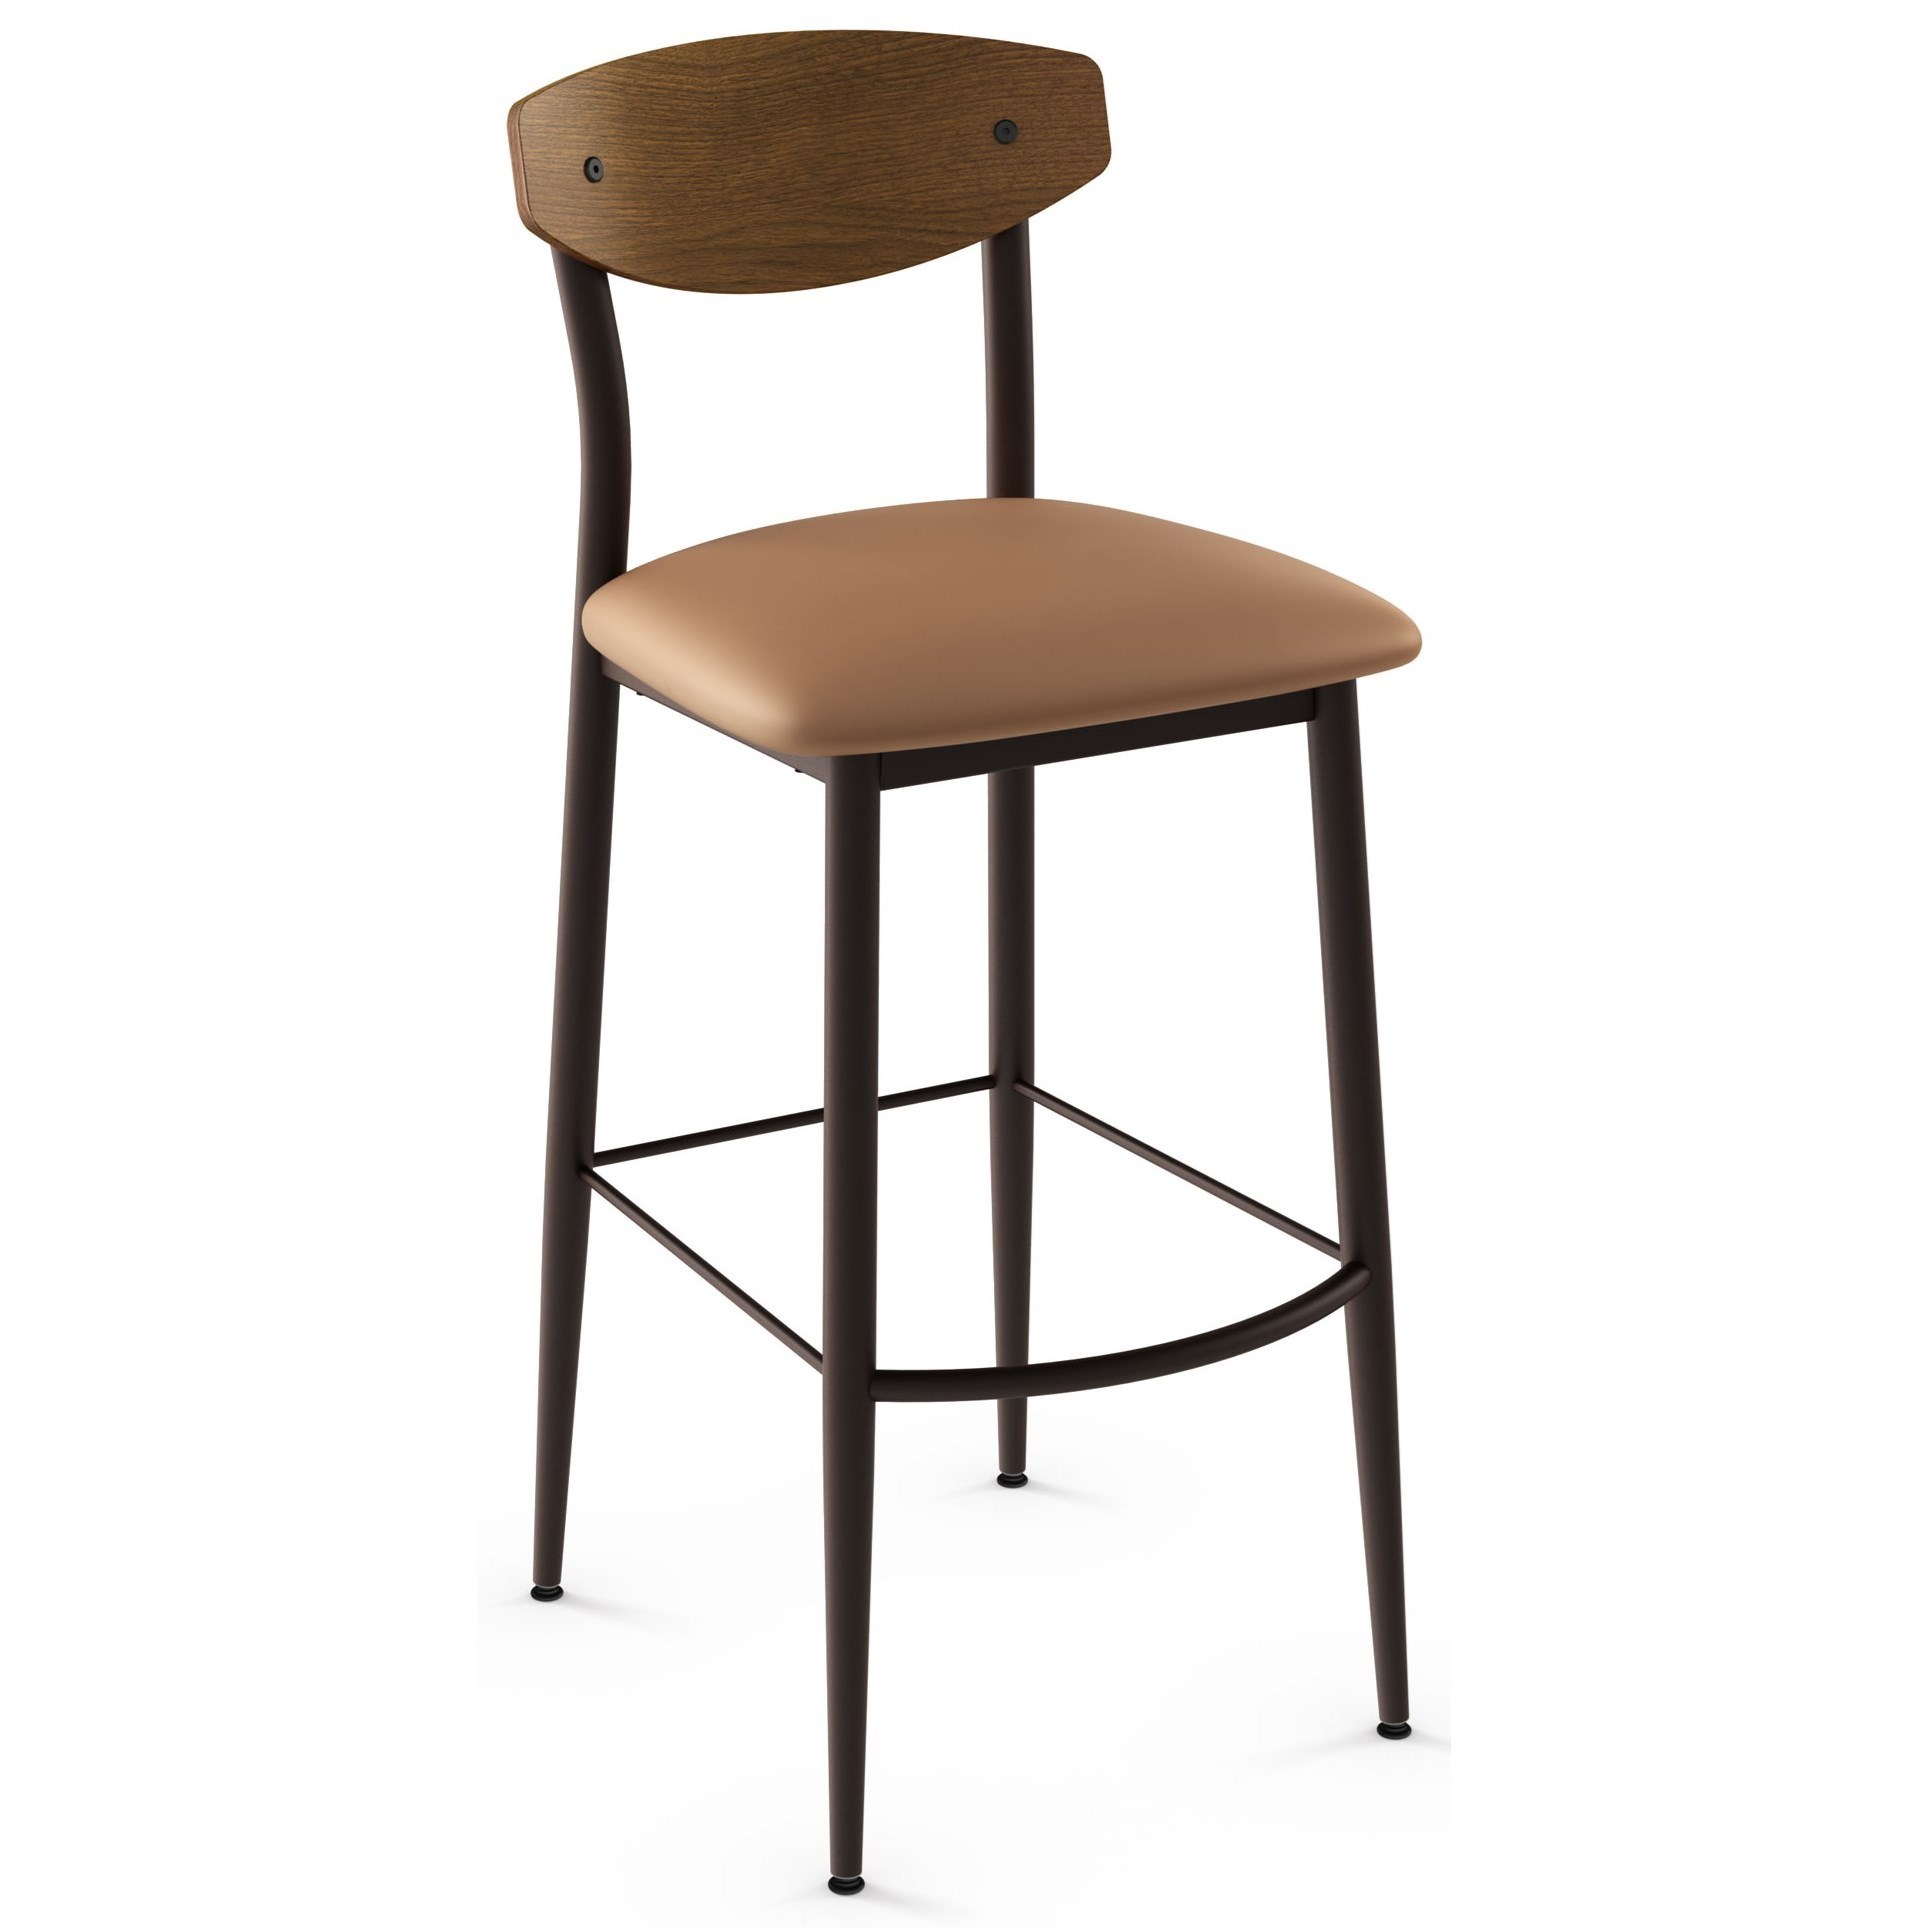 Amisco Nordic 40202 26 52 Er 47 Customizable 26 Hint Counter Stool Upper Room Home Furnishings Bar Stools